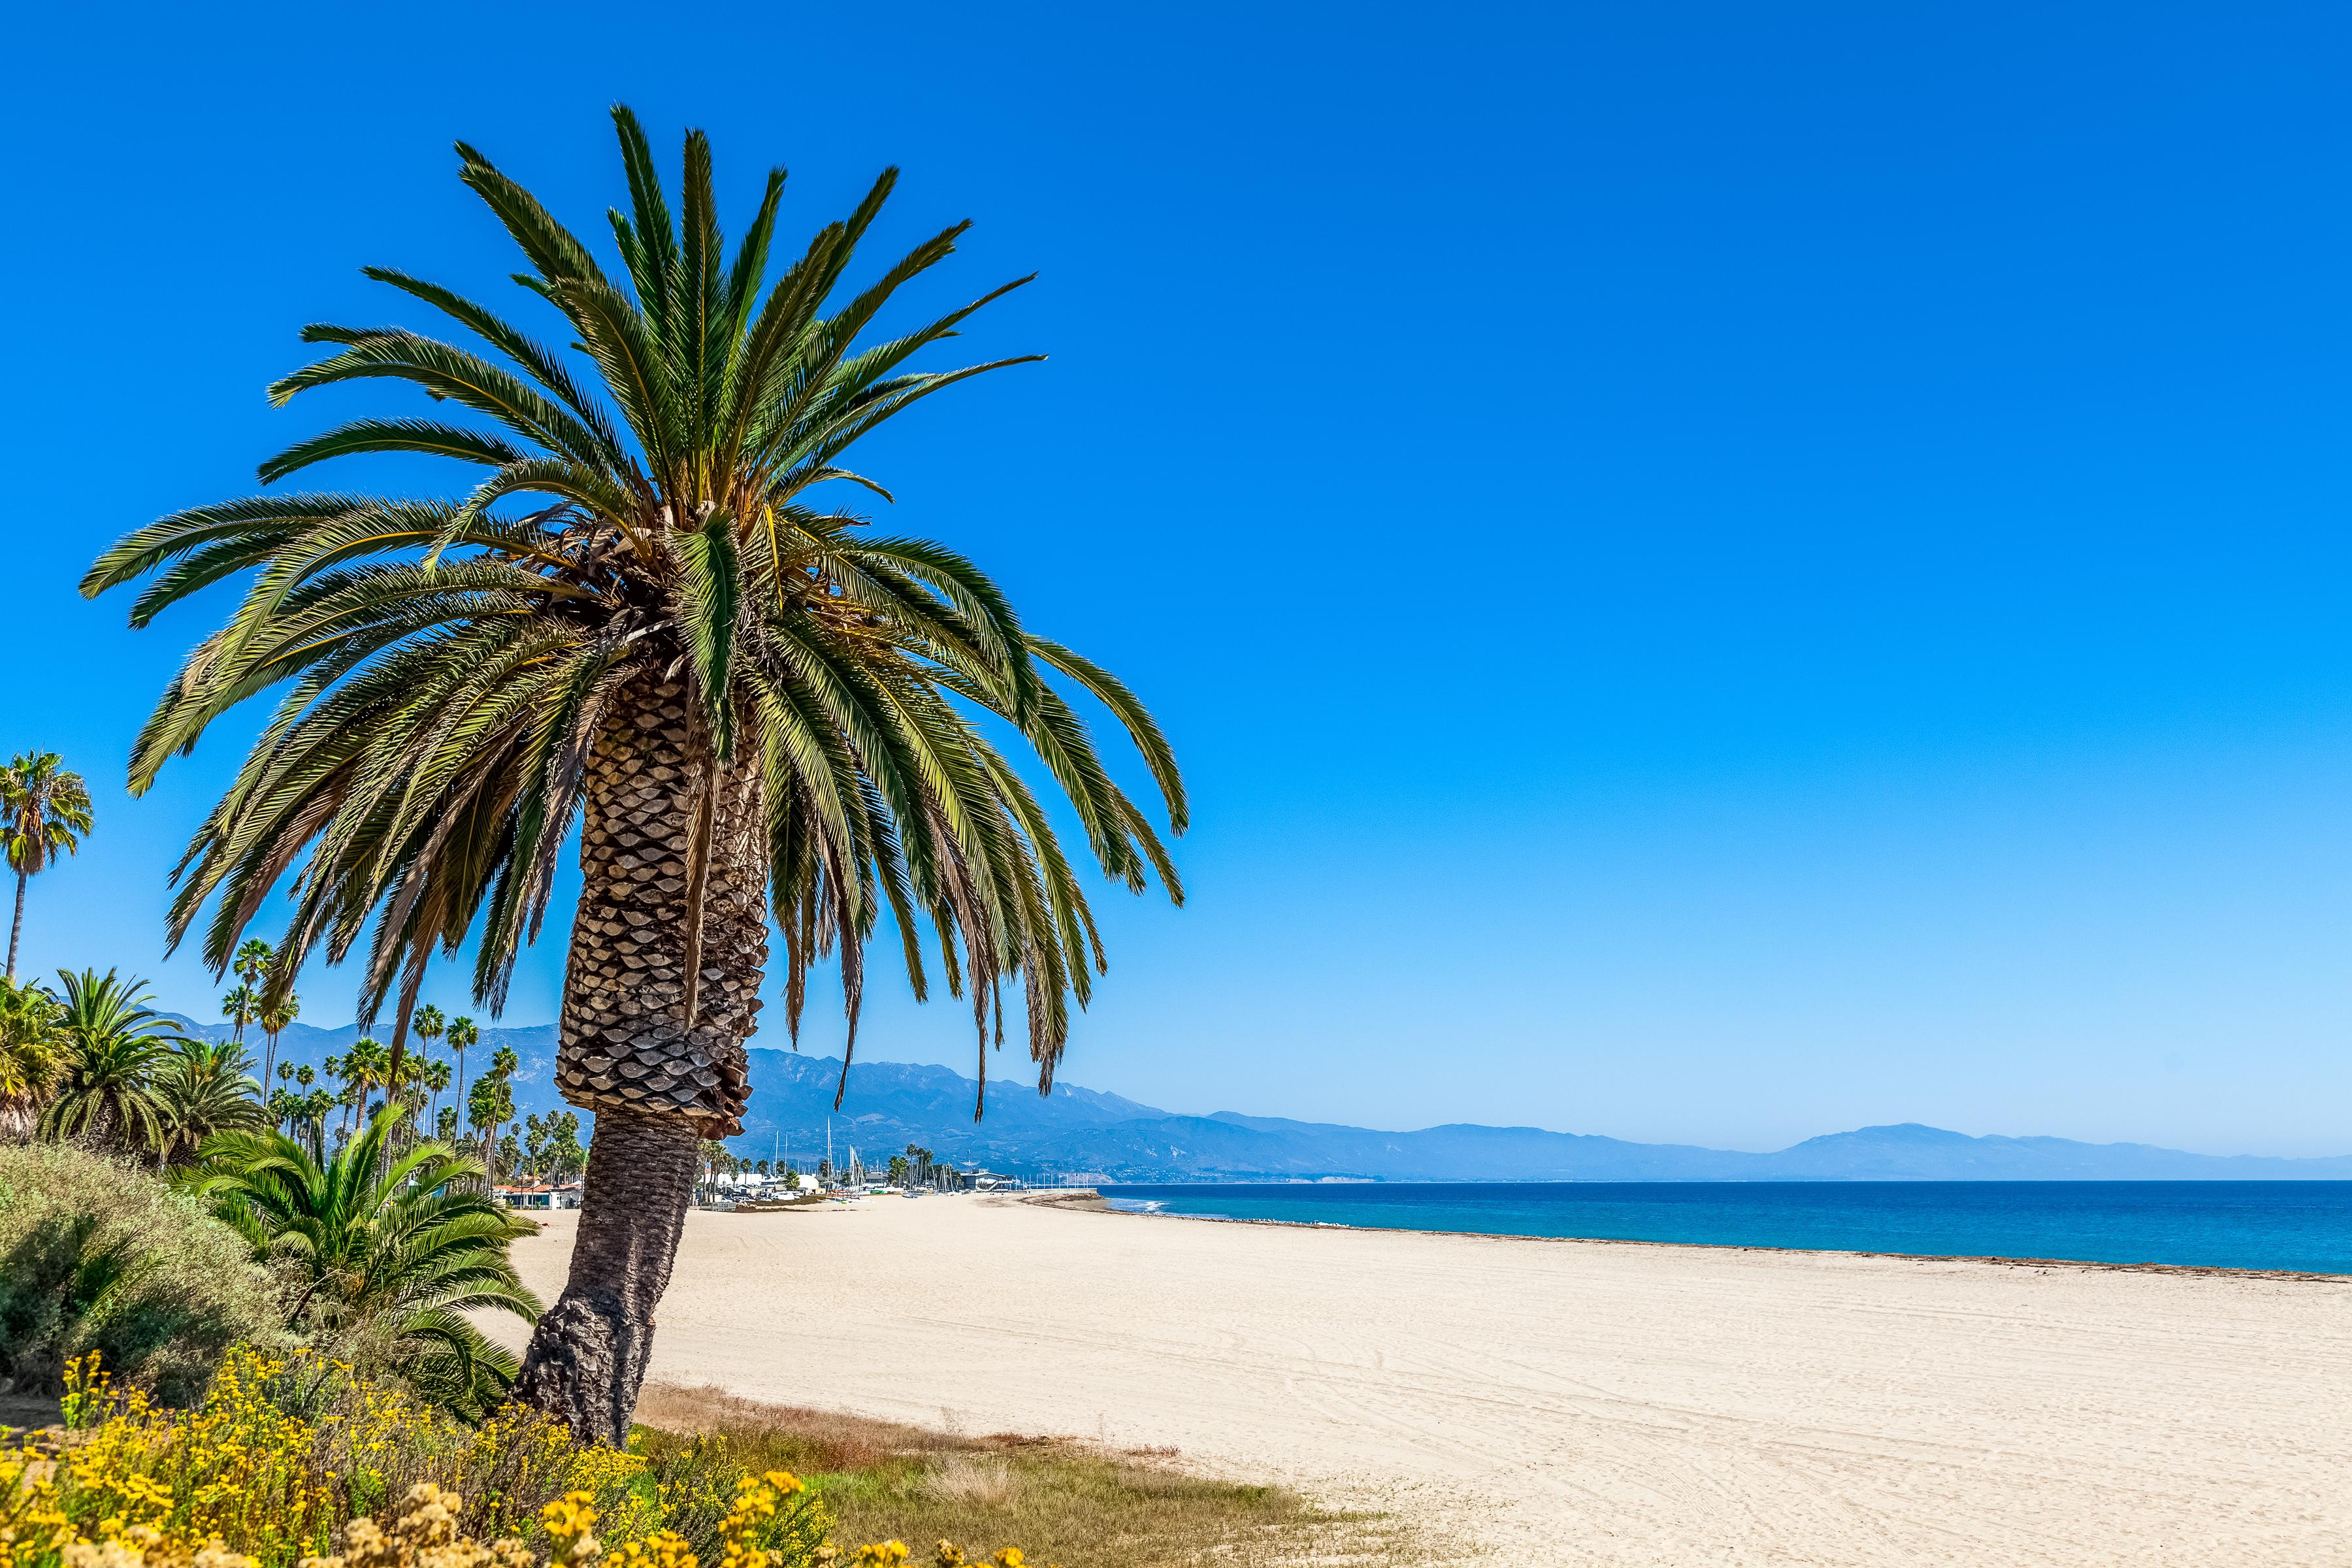 Soak up the sunshine on the pristine beaches of Santa Barbara.